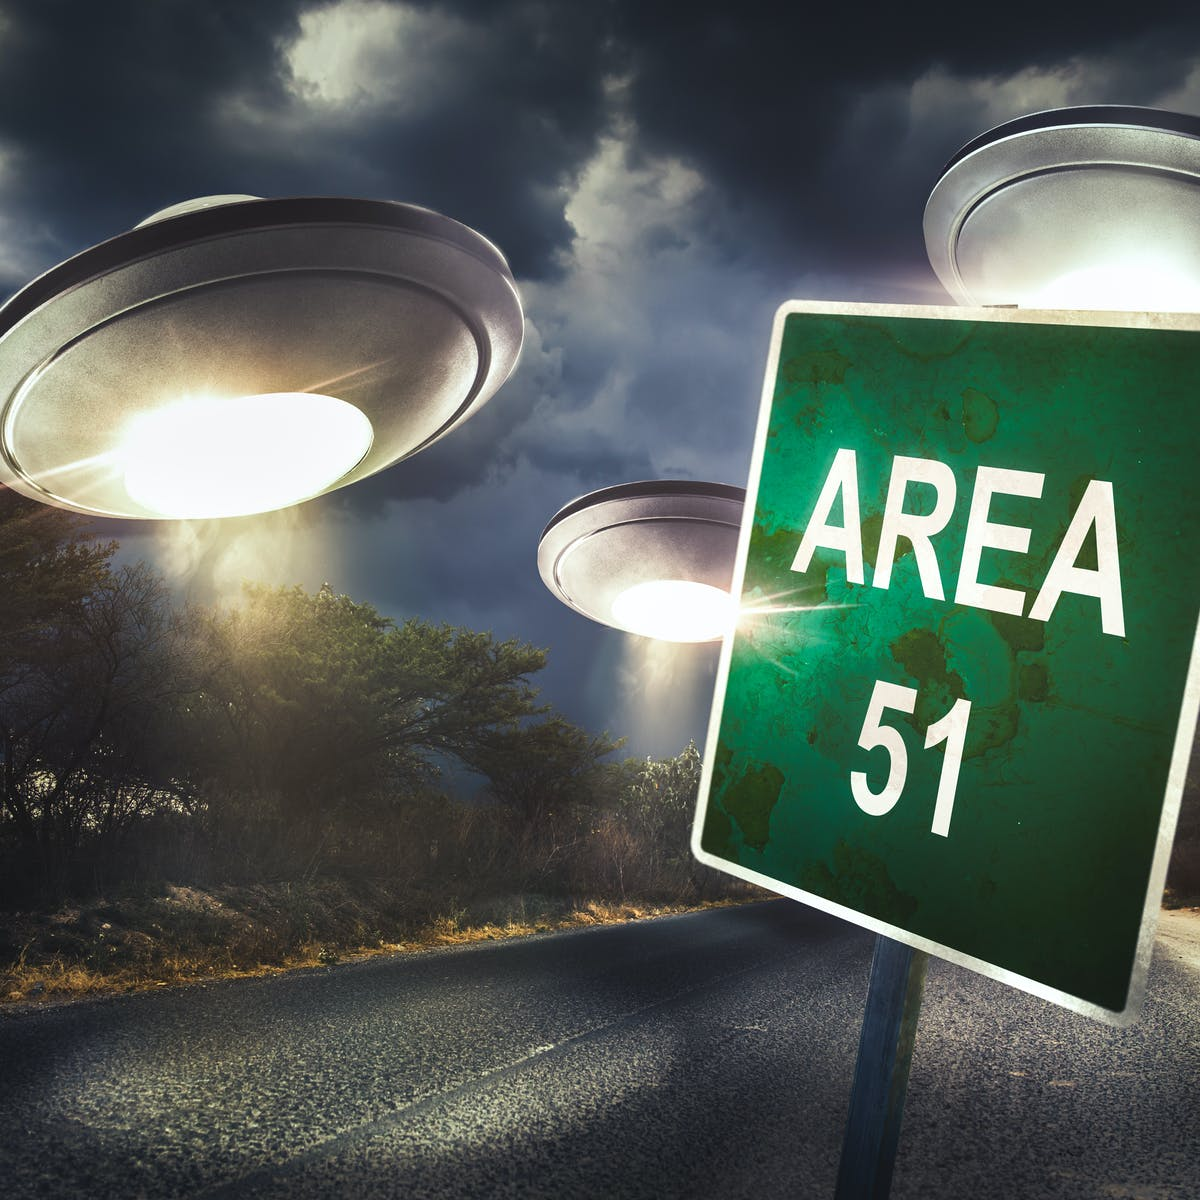 Yes, I'm searching for aliens – and no, I won't be going to Area 51 to look for them